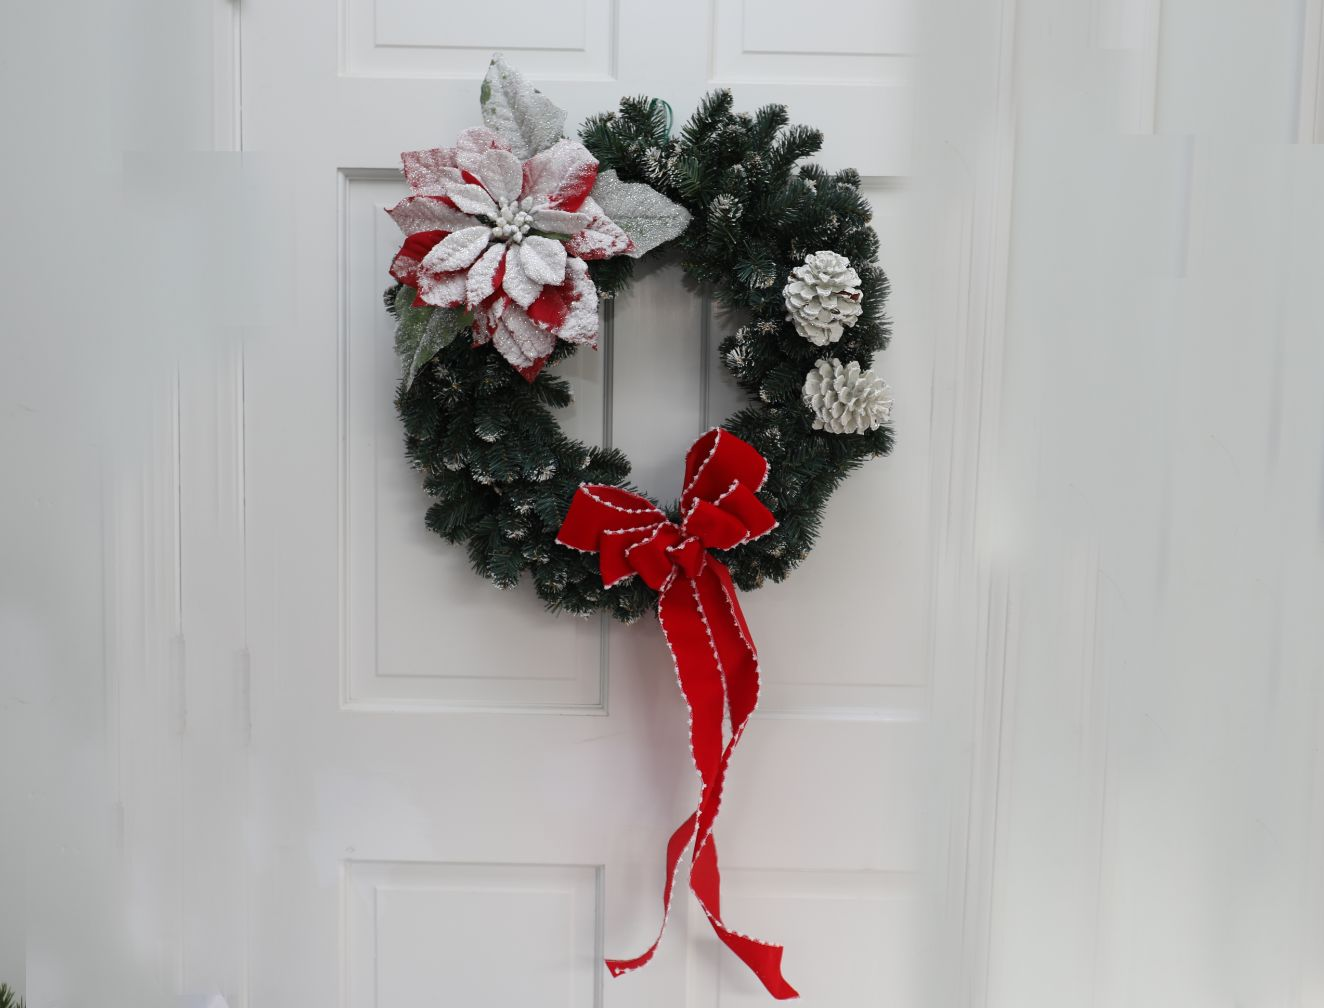 Evergreen Wreath with White Cones, Poinsettia and Red Bow | 22 inch